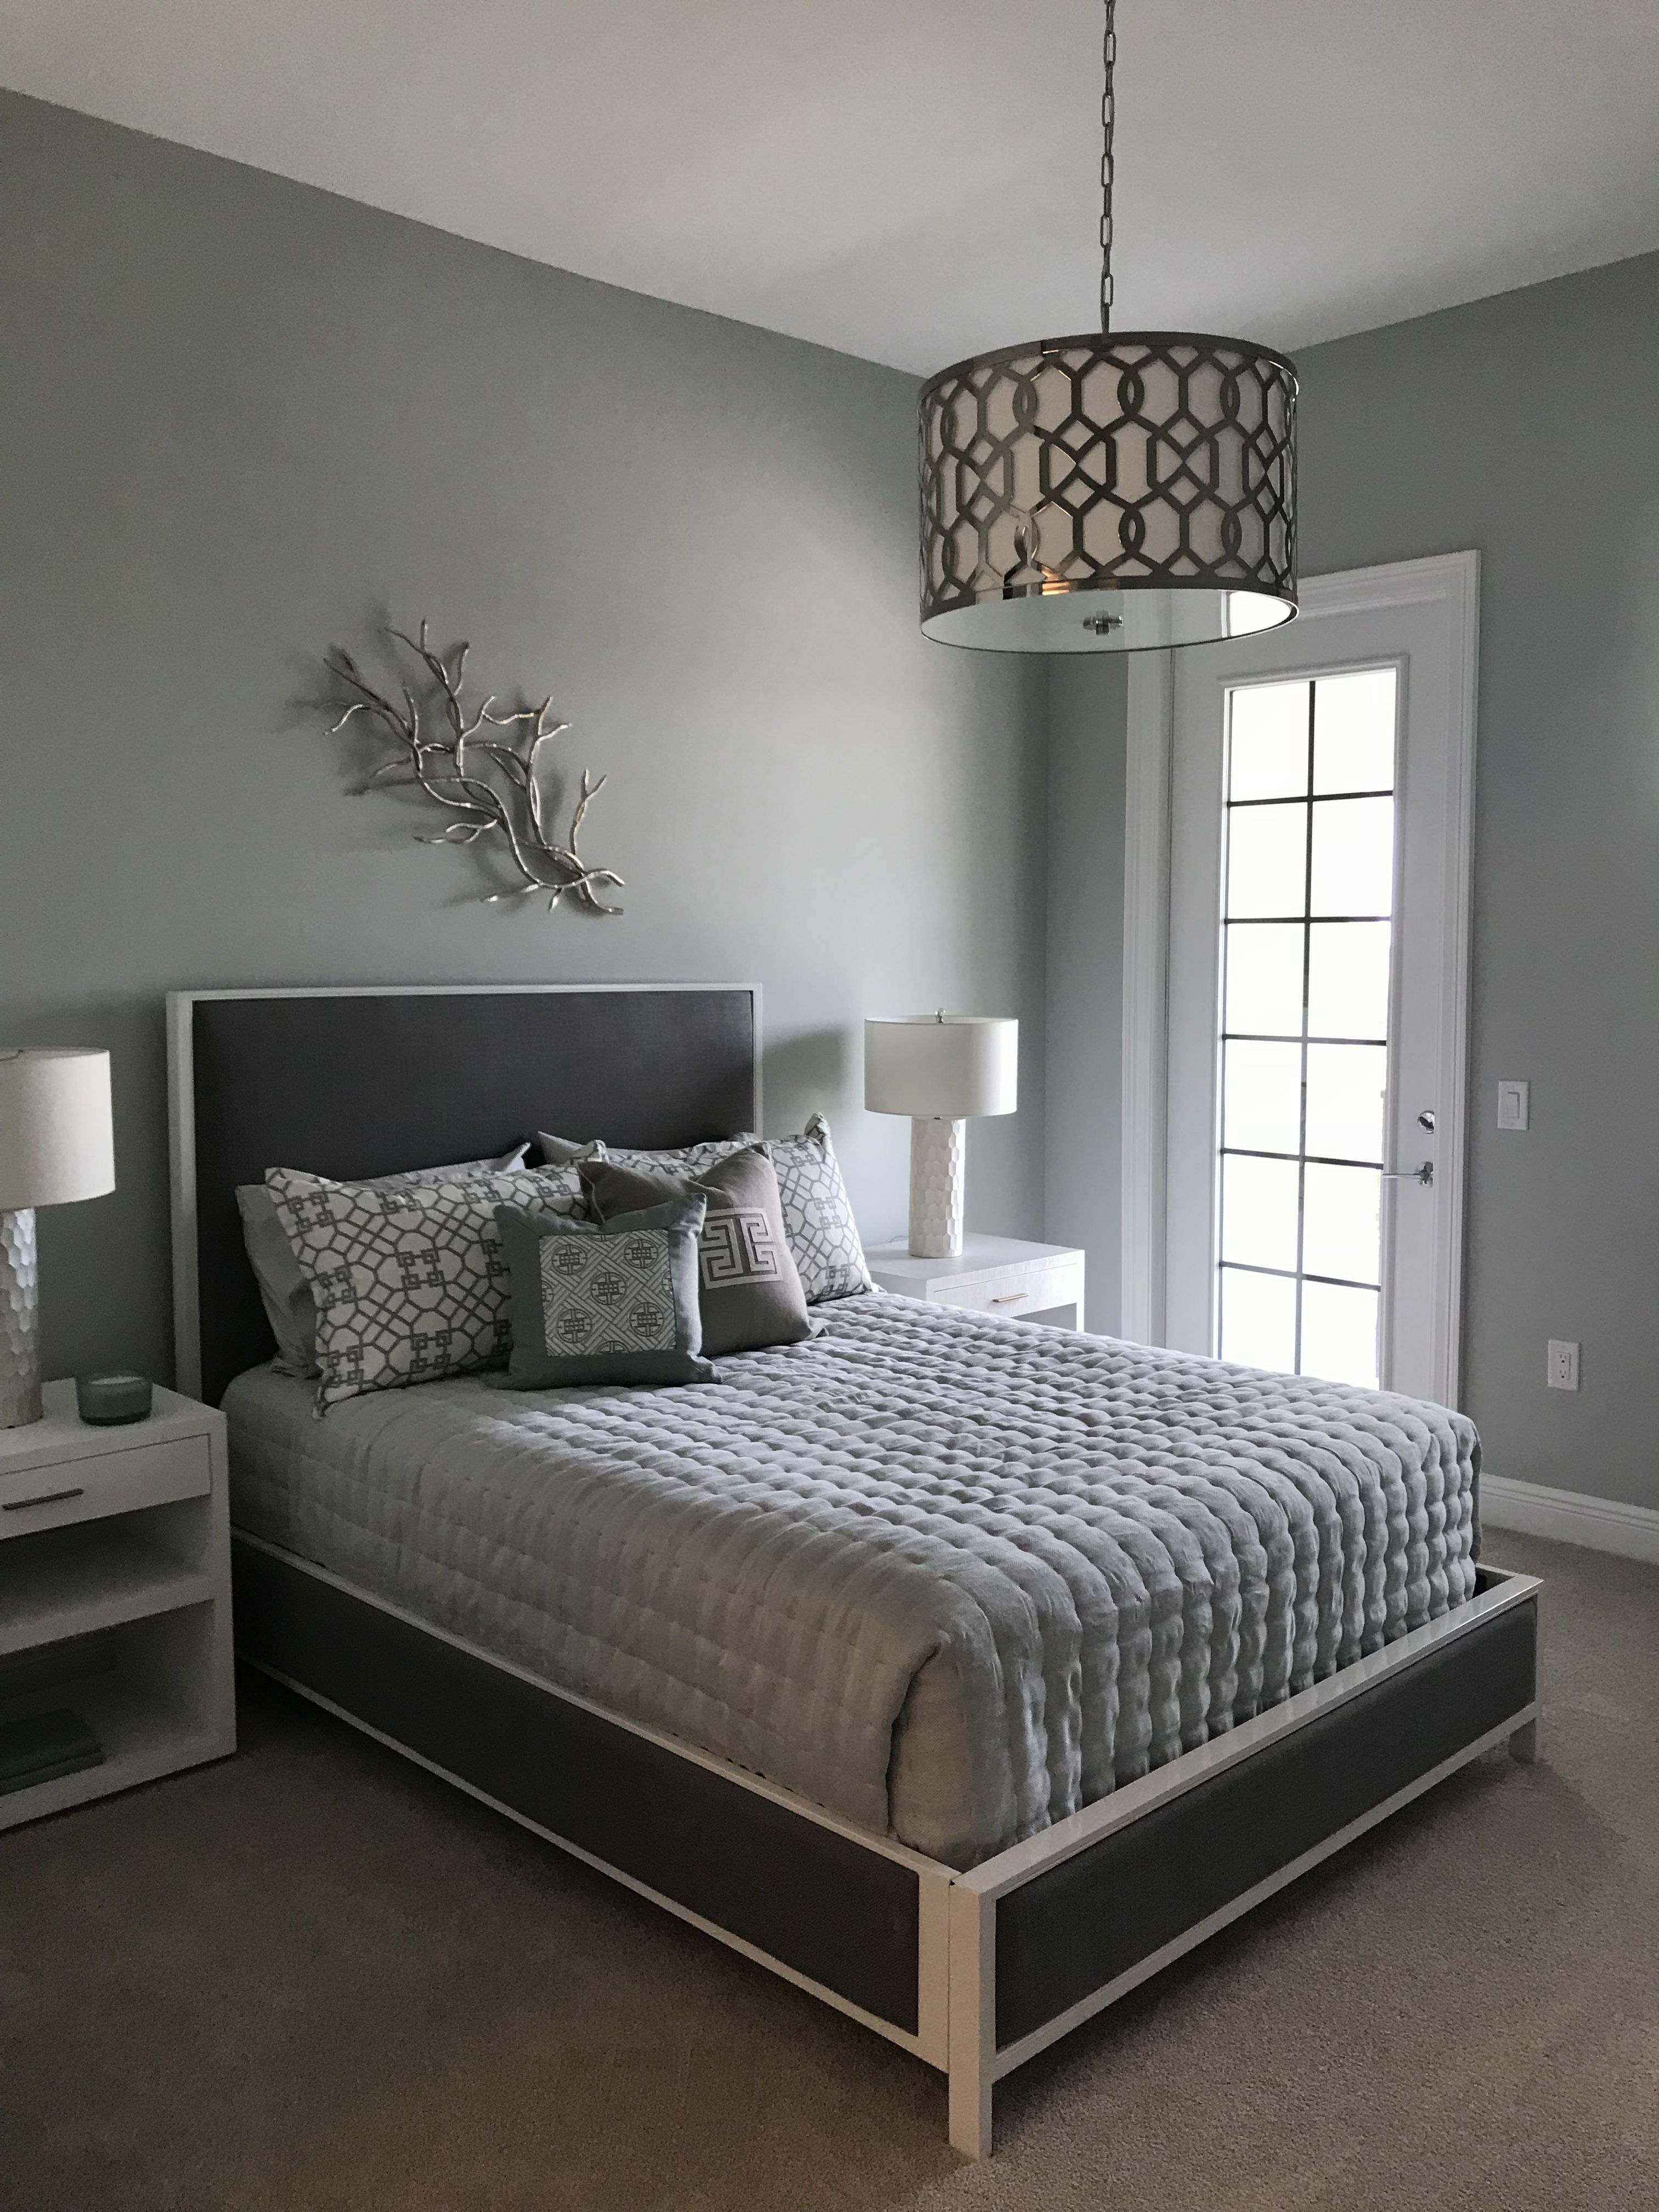 Pin by Laurie Walter on Bedrooms that are Zen Furniture